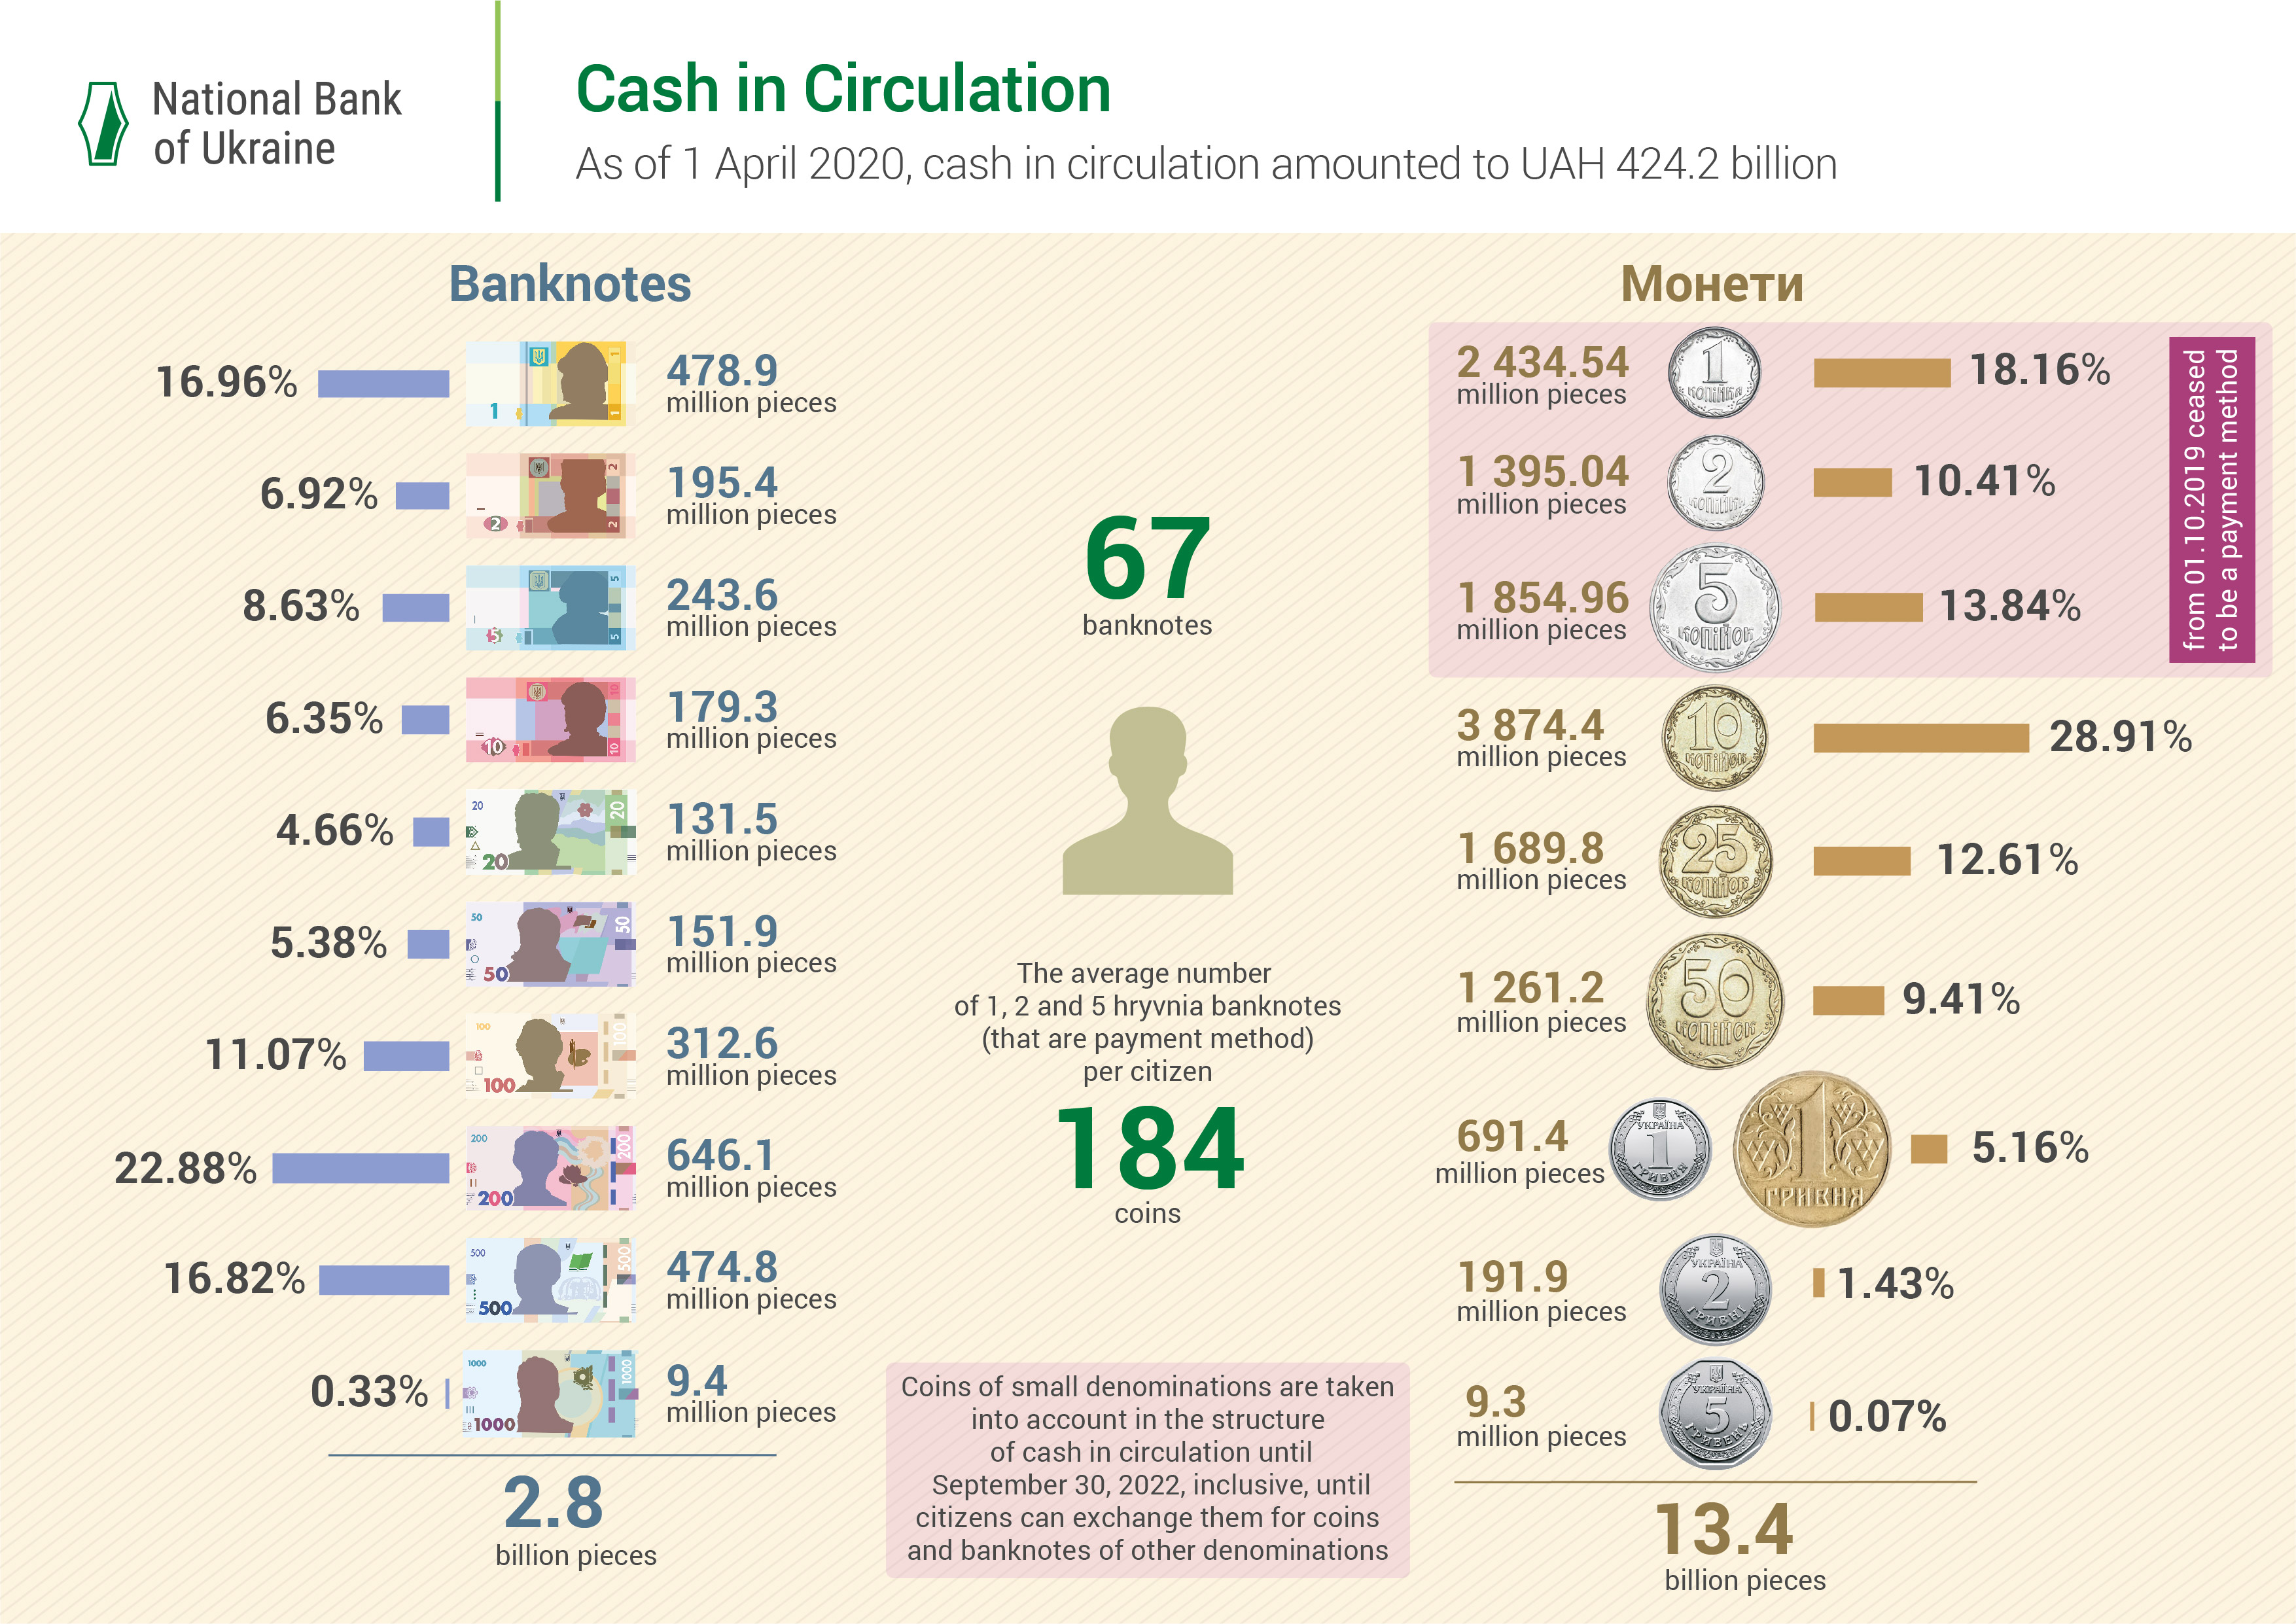 Cash in Circulation as of April 1 2020